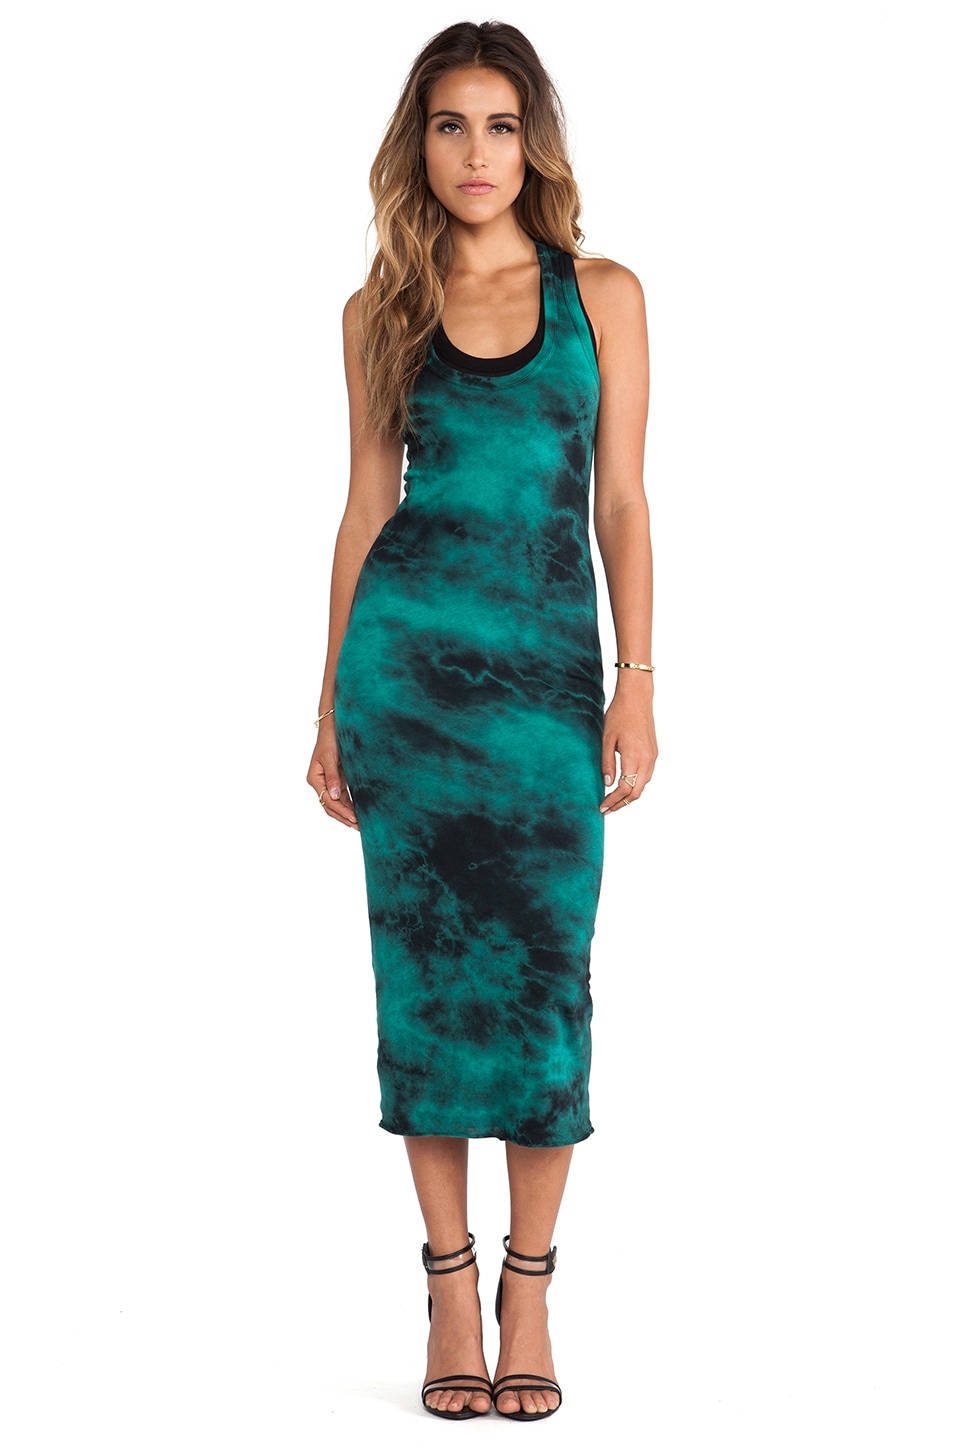 Enza Costa Ionic Wash Bold Doubled Tank Dress in Emerald & Black